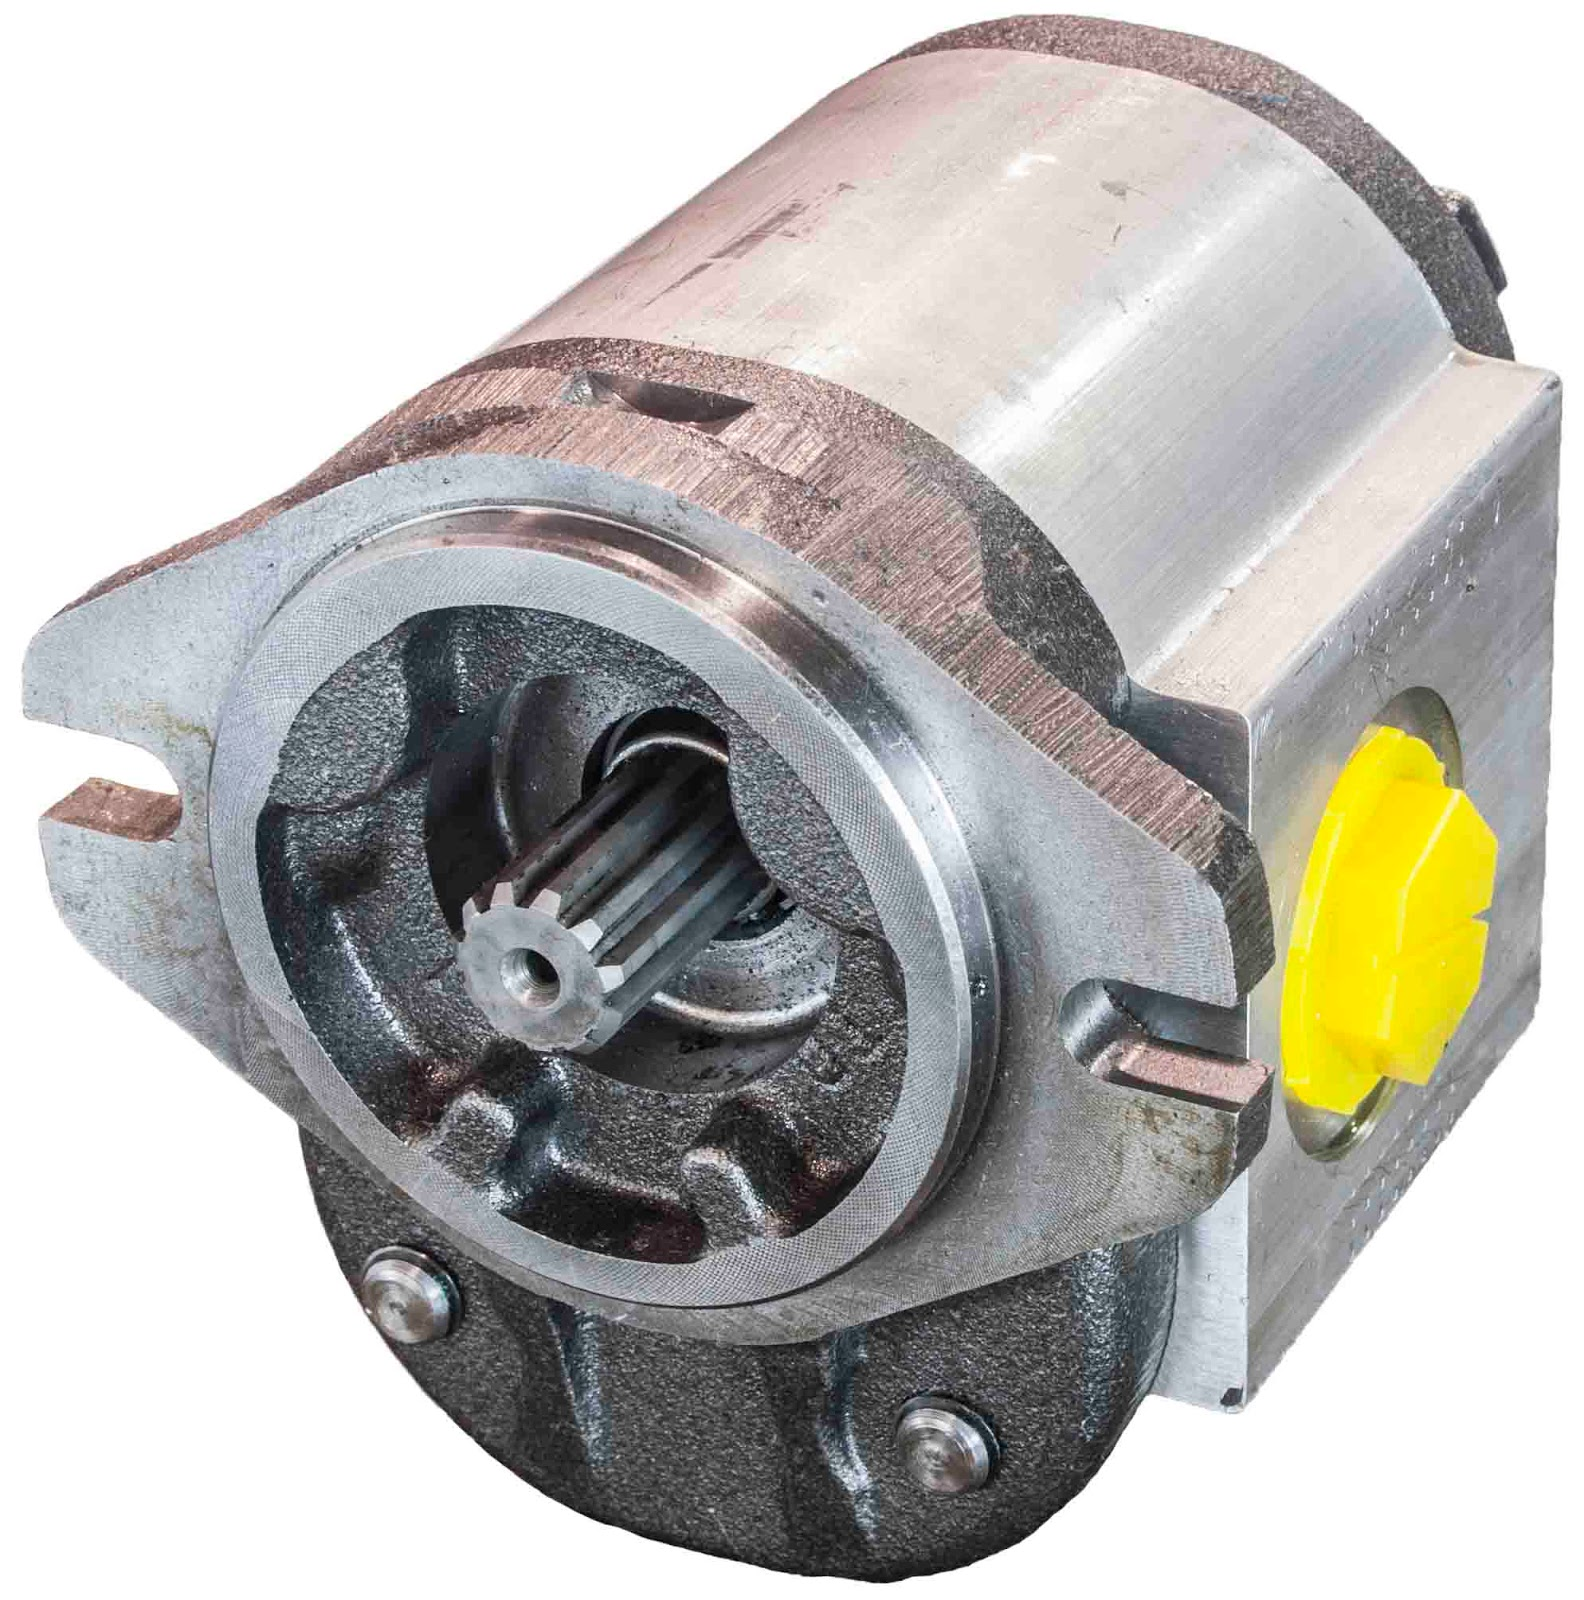 hydraulic pumps in commercial applications